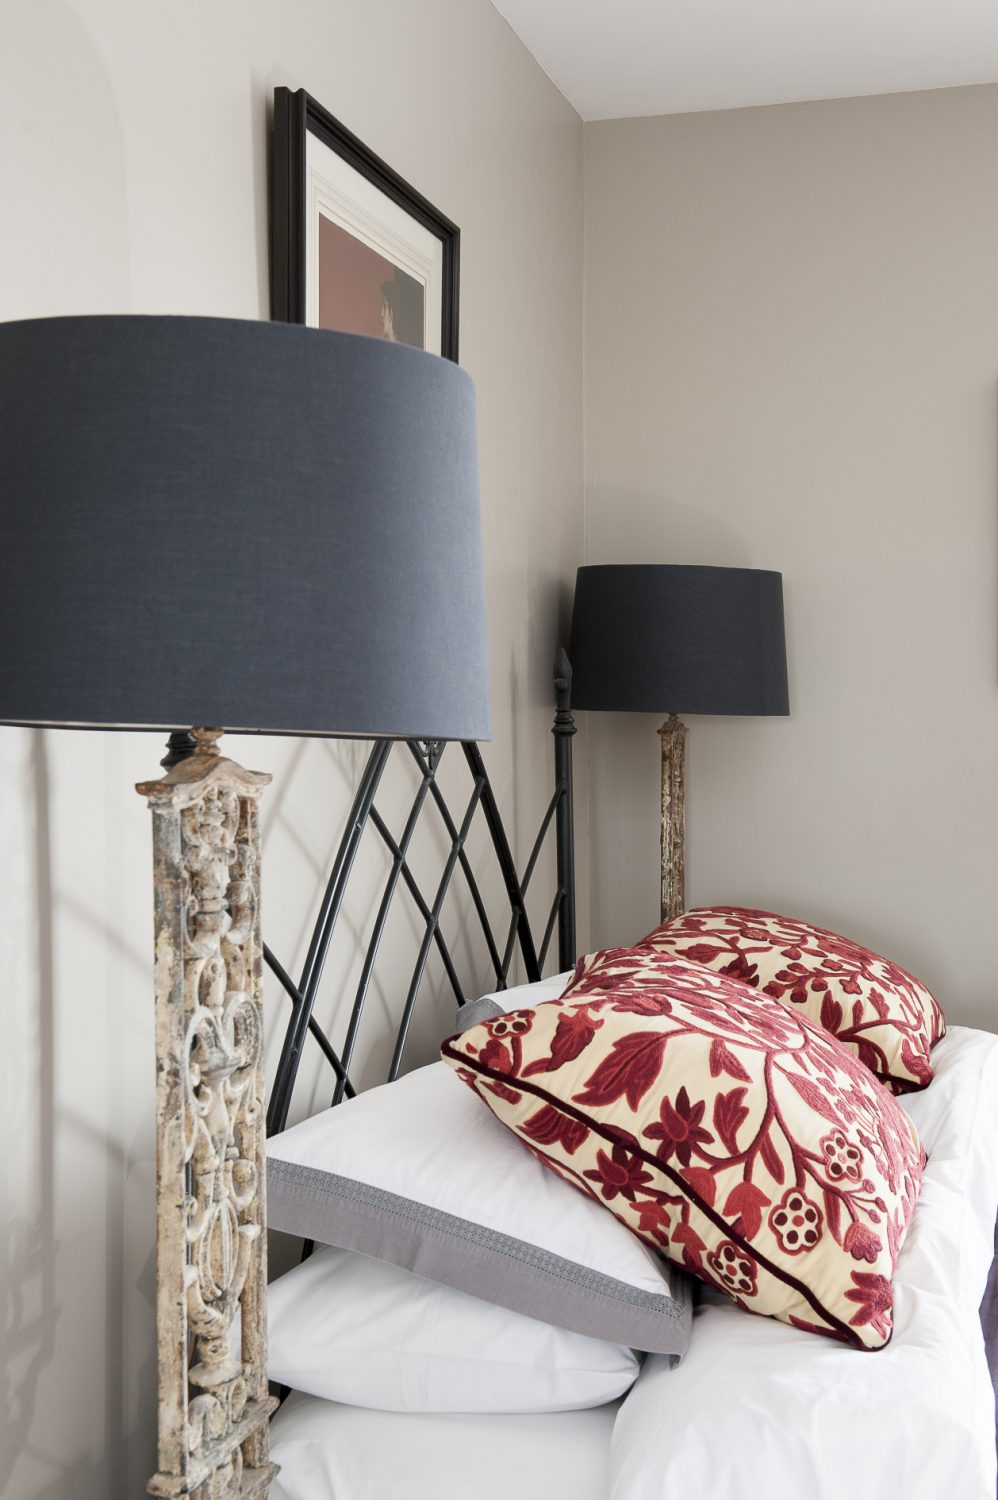 Rich fabric cushions and faux furs are used to dress up and add a touch of luxury to each of the guest rooms – while walls have just a picture or two